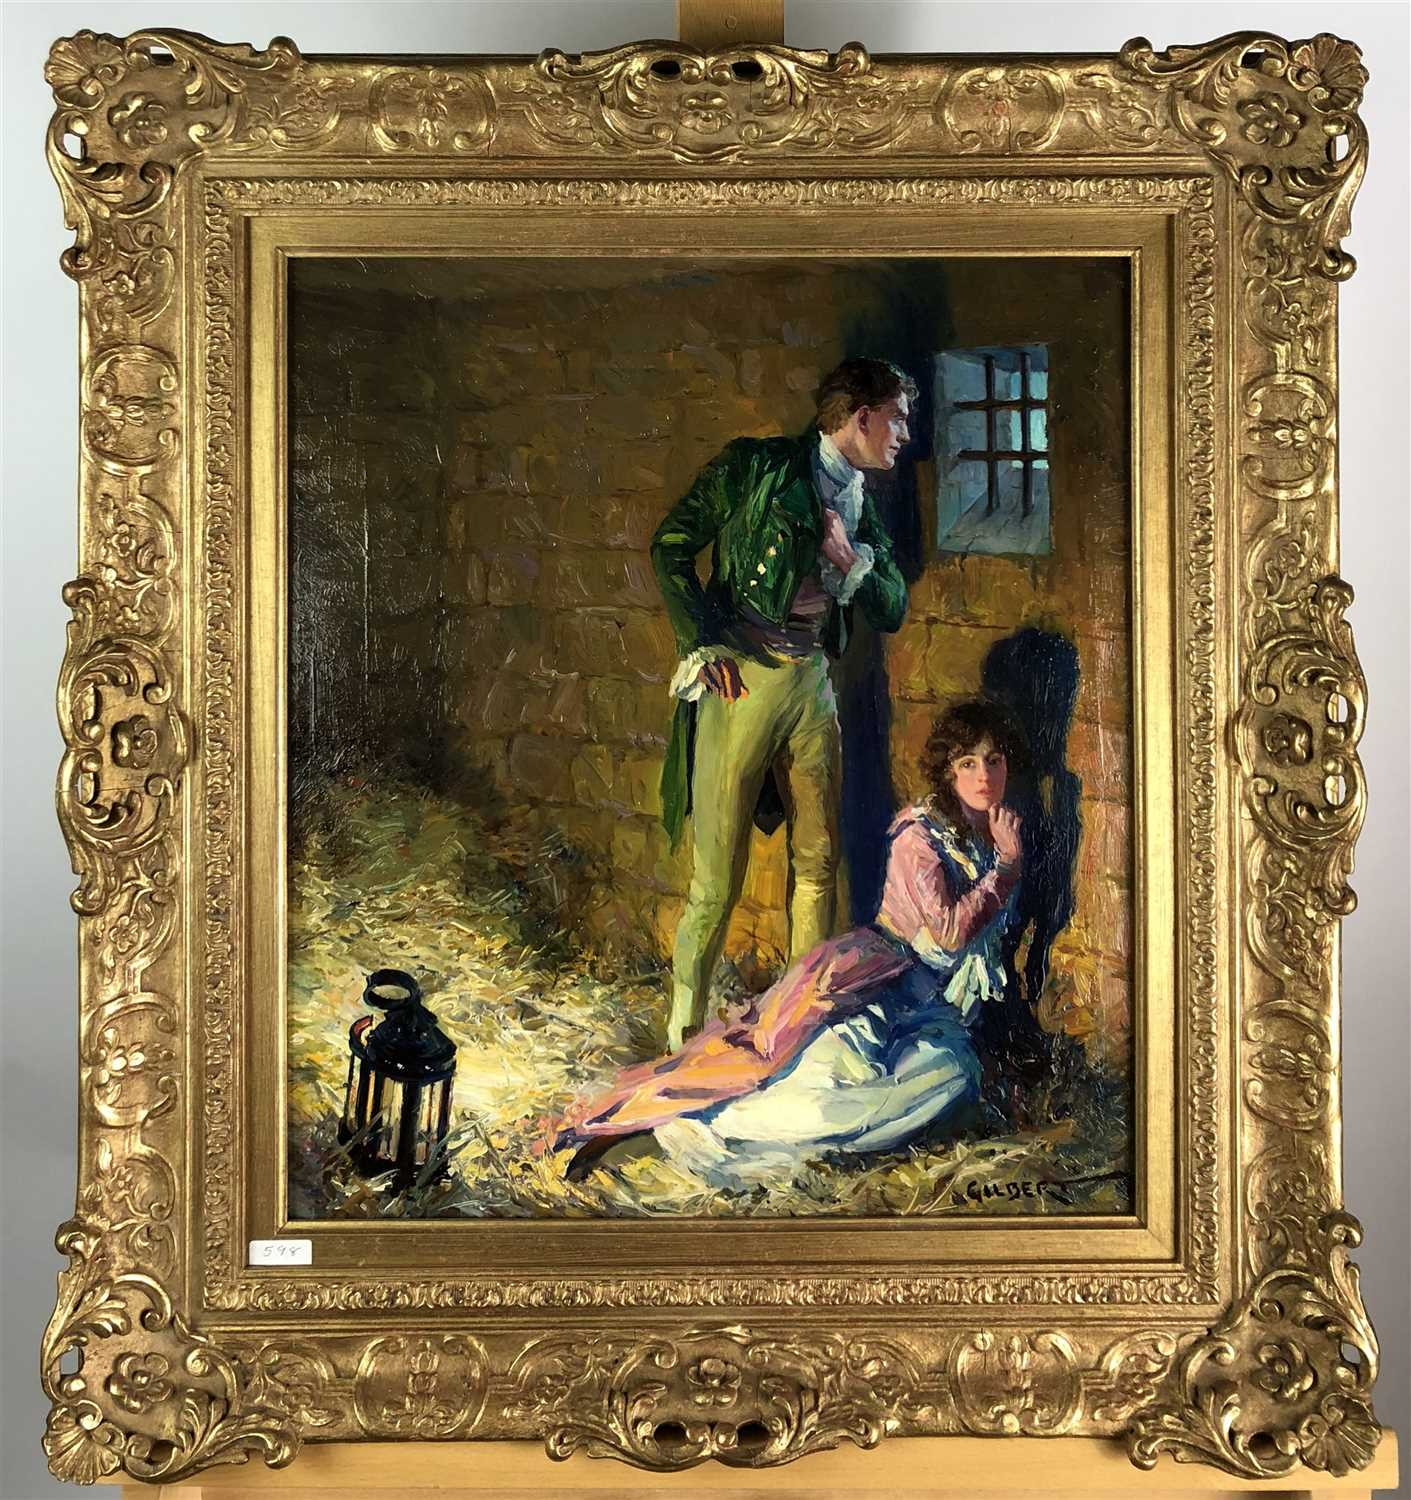 Lot 90-Study of a courting couple in a stable, 19th century oil in pierced gilt frame, signed Gilbert